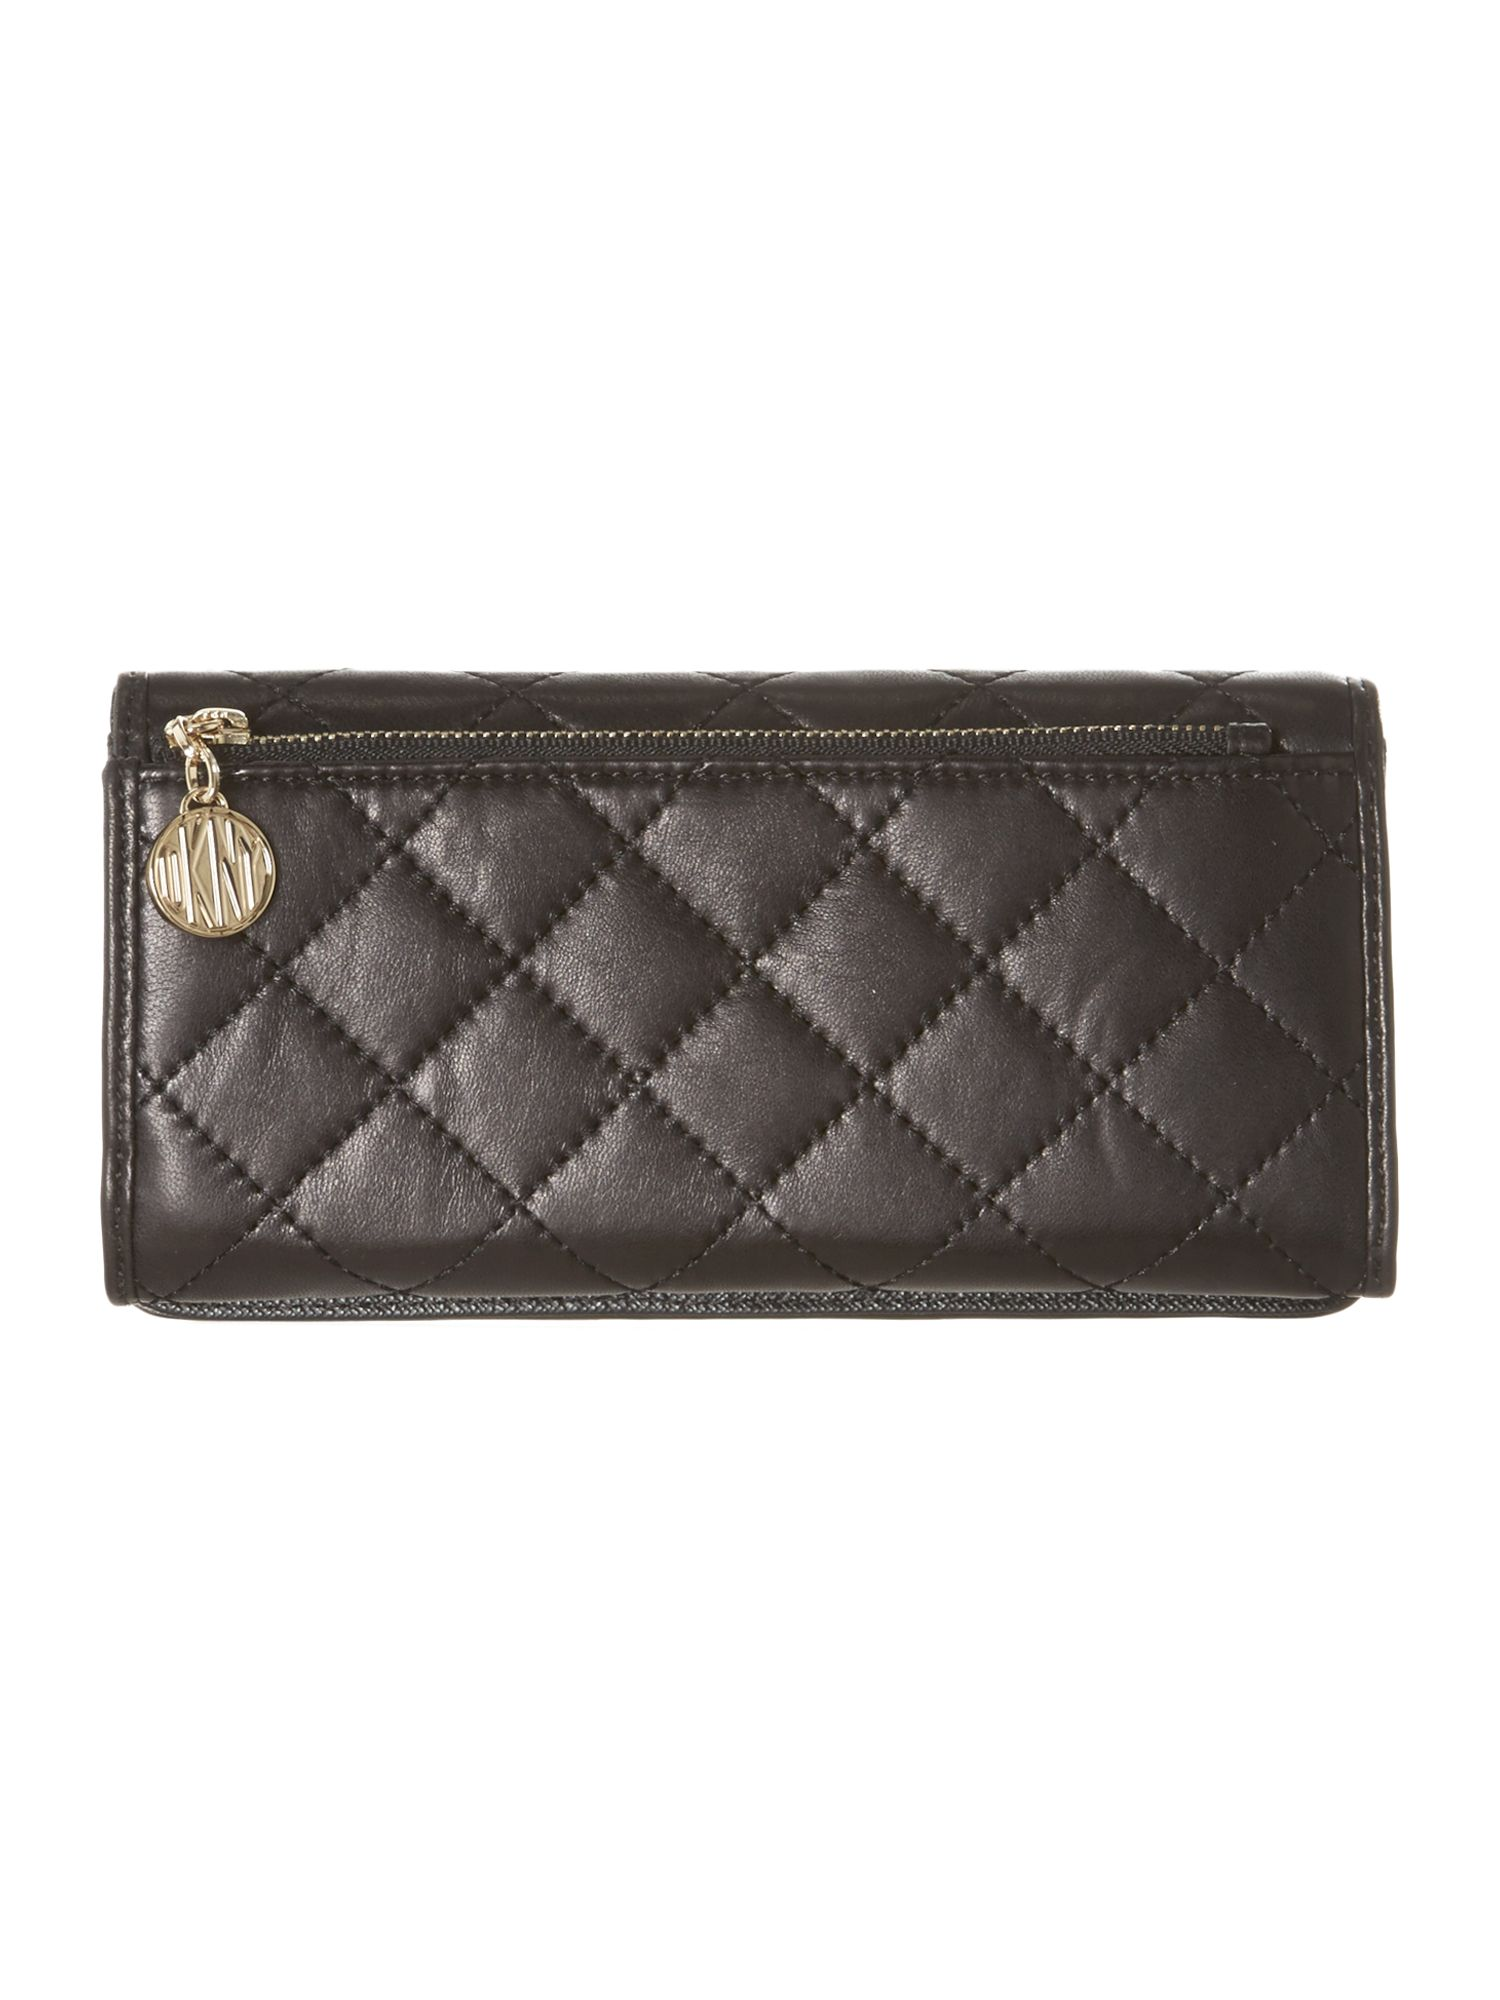 Black large quilted flapover